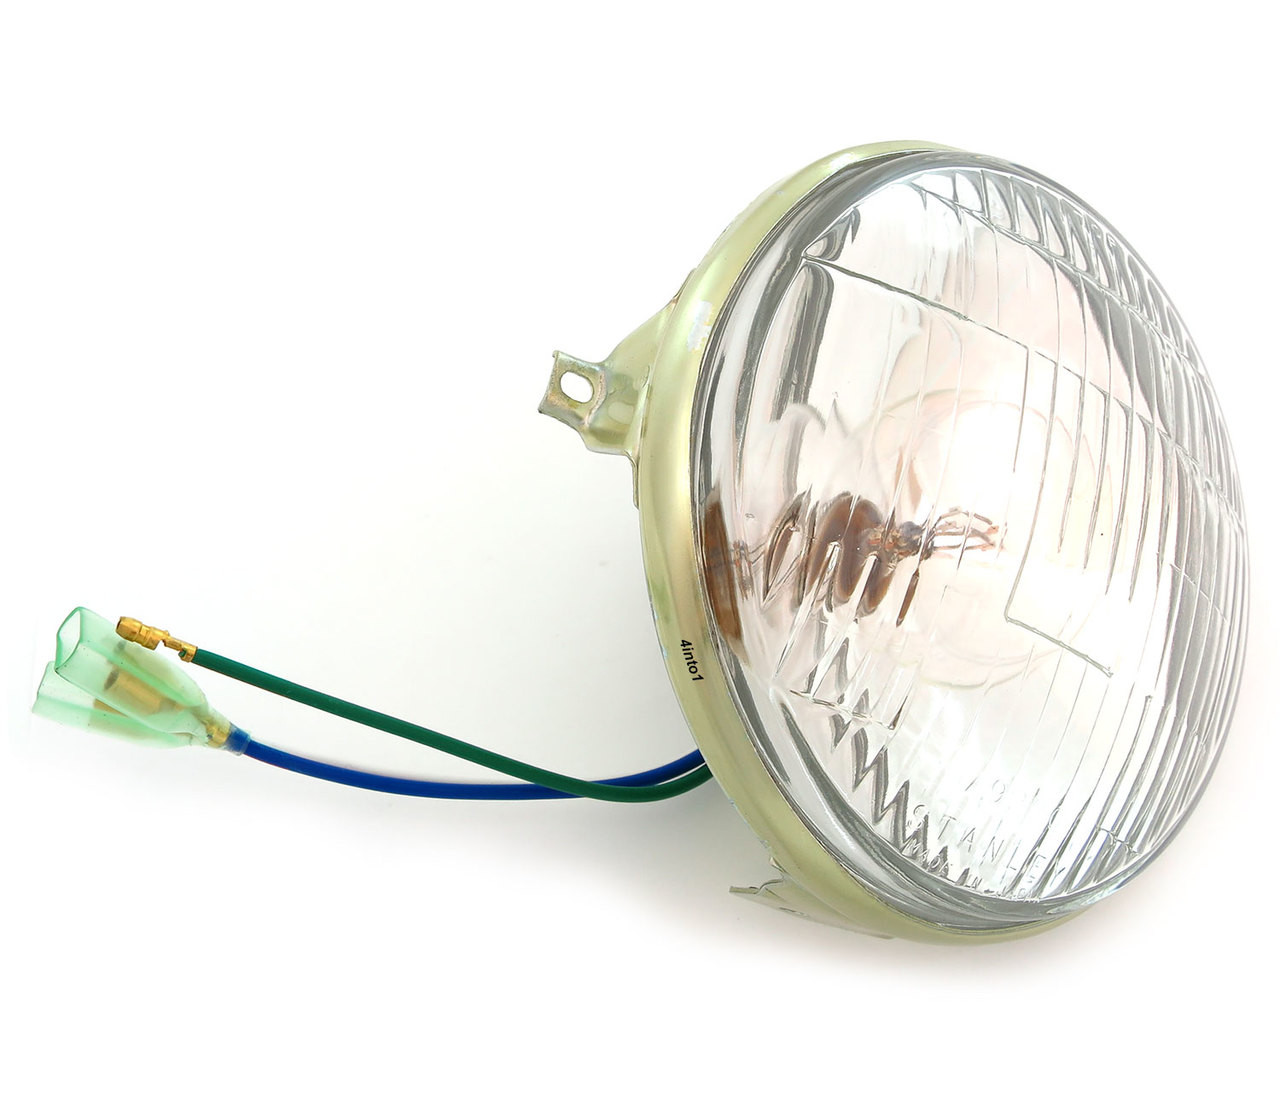 genuine honda 6v sealed beam headlight 33120 243 672 ct1967 honda s90 wiring headlight 10 [ 1280 x 1113 Pixel ]